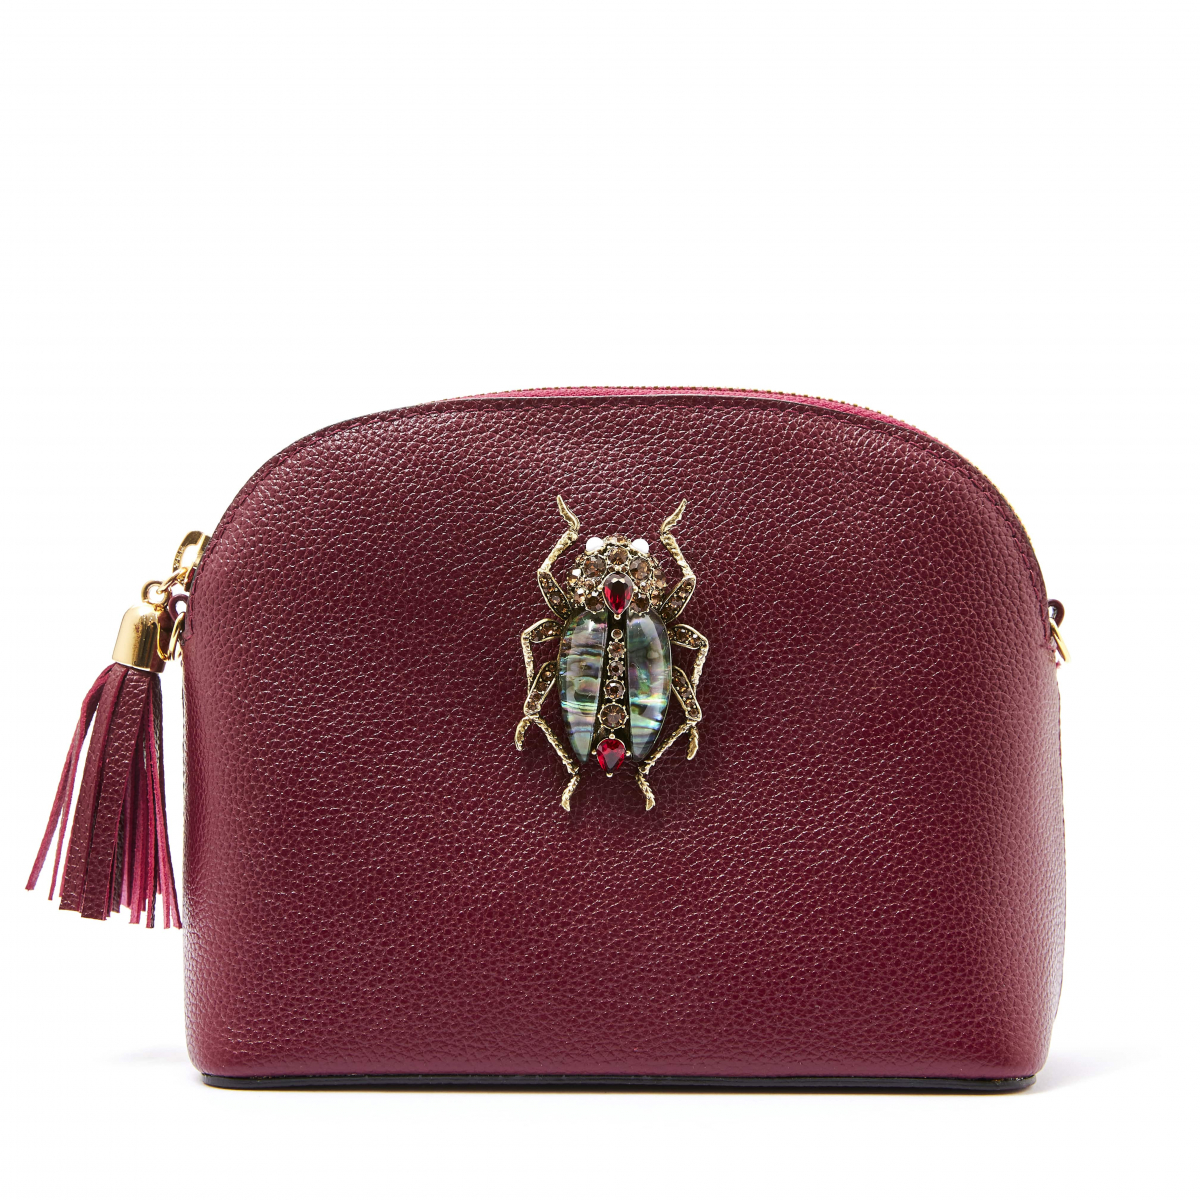 Margot Bejewelled Beetle Handbag - Mulberry